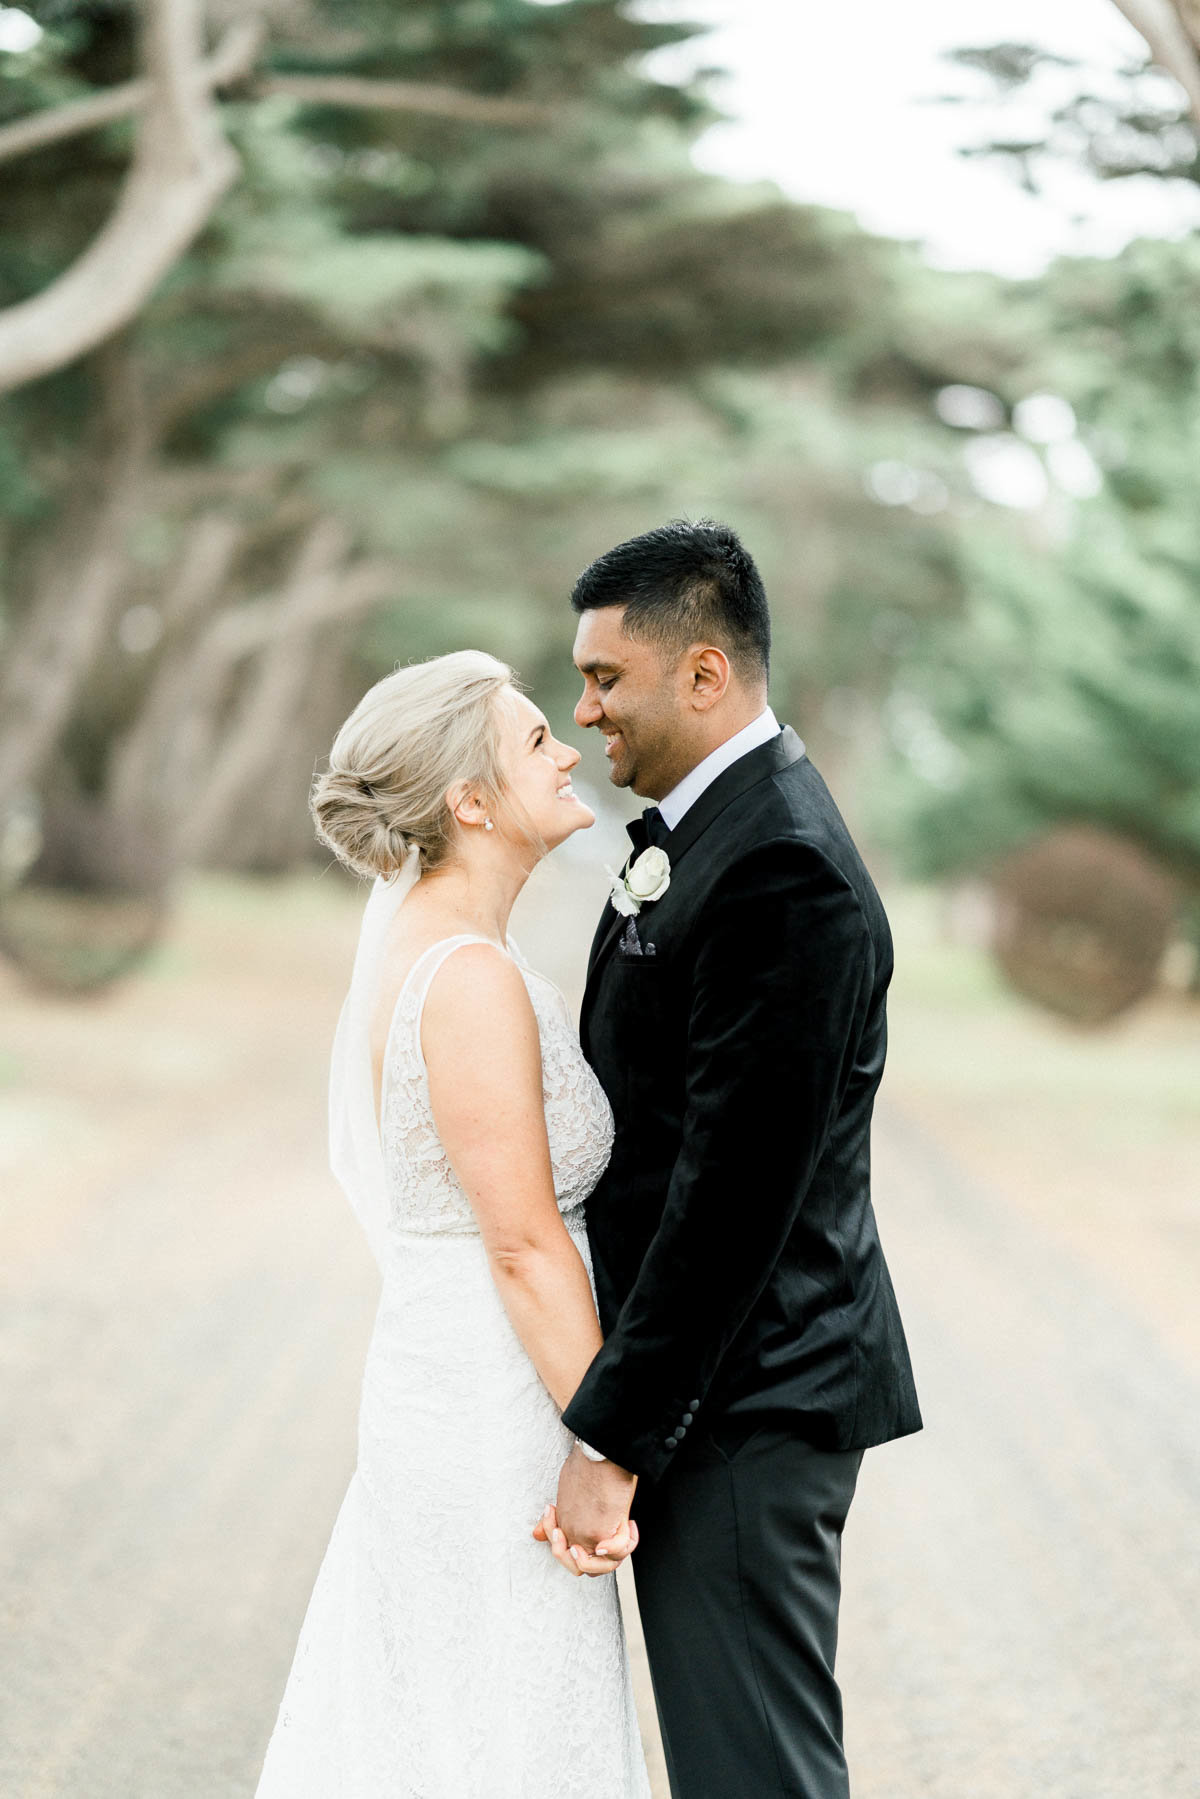 trenavin-chapel-phillip-island-wedding-heart+soul-weddings-sally-sean-01450